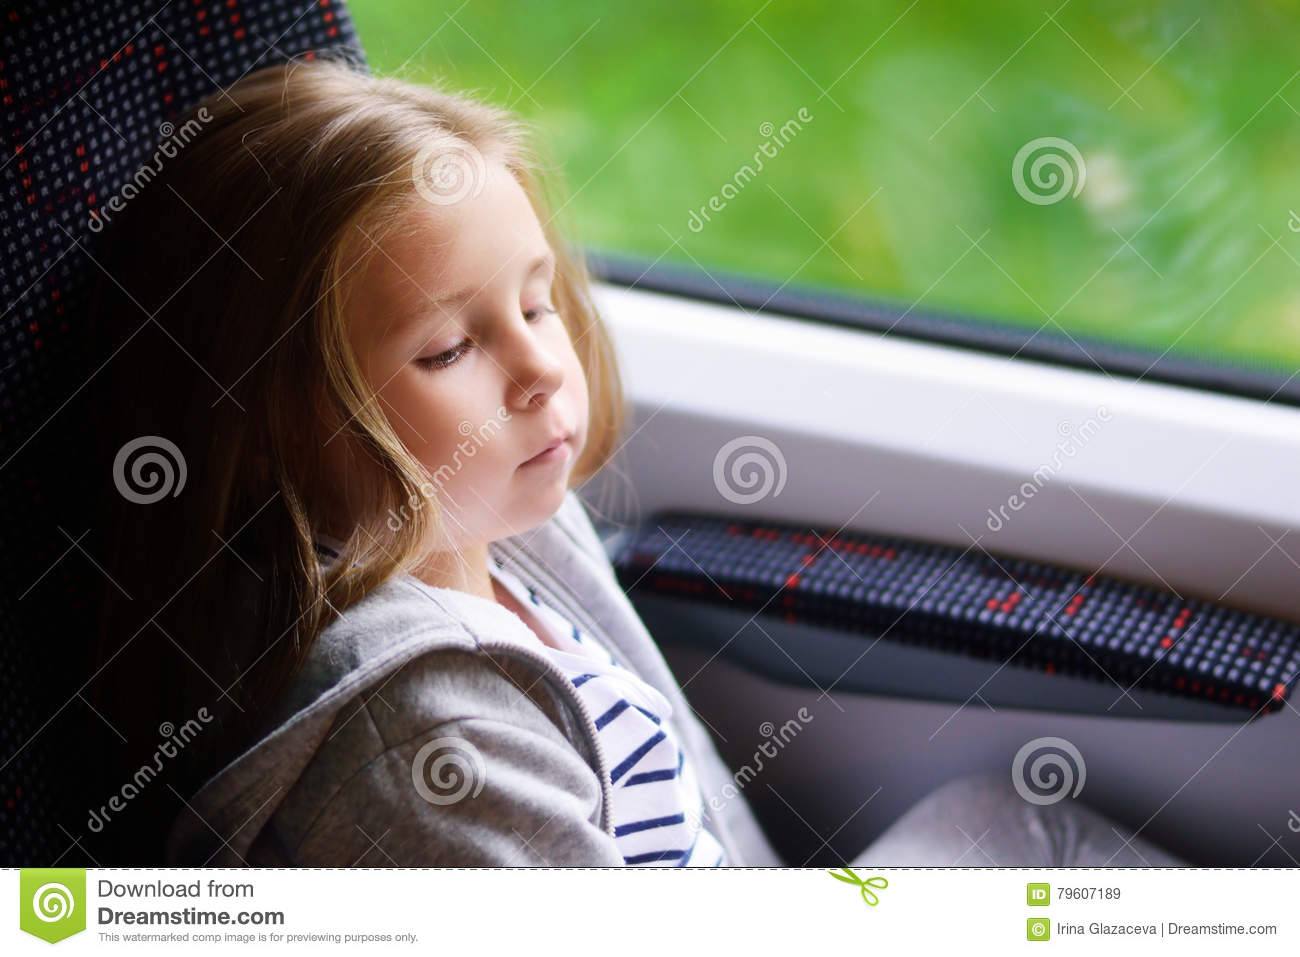 Adorable little girl going on vacations and traveling by railway.